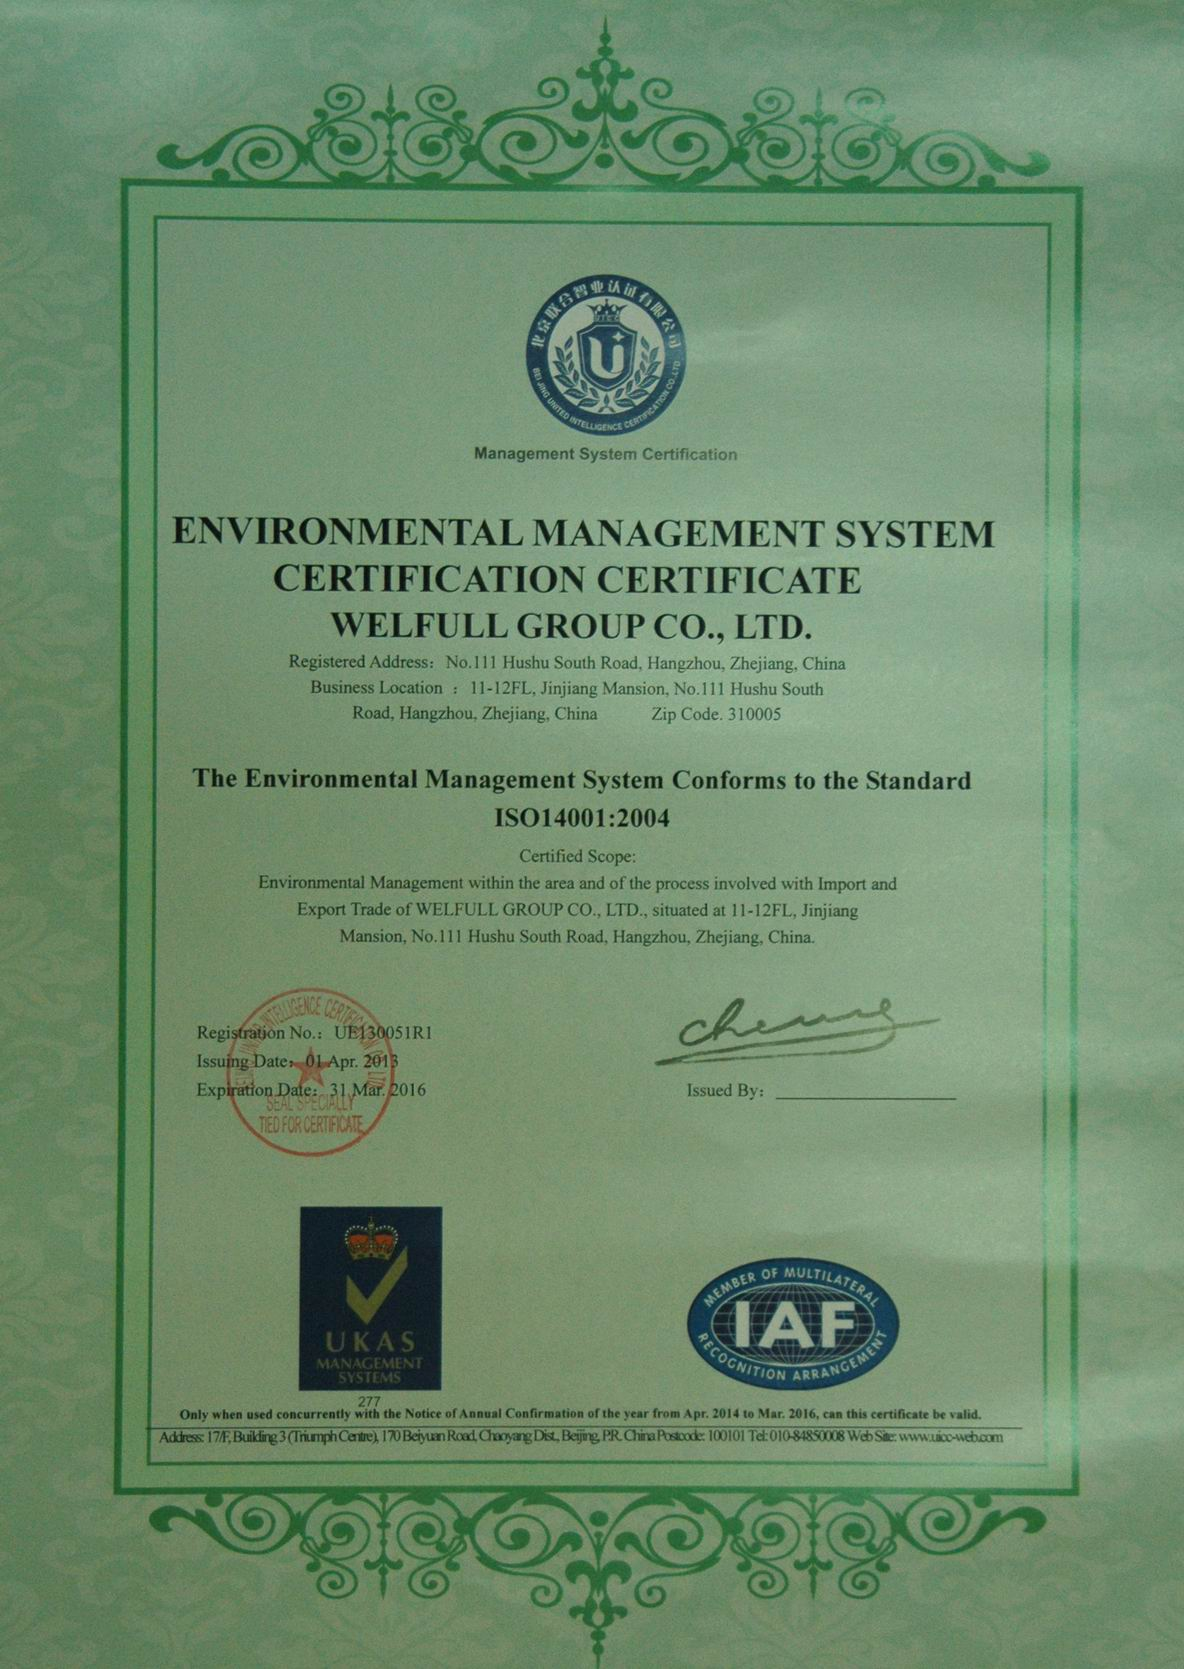 The Quality Management System Certificate